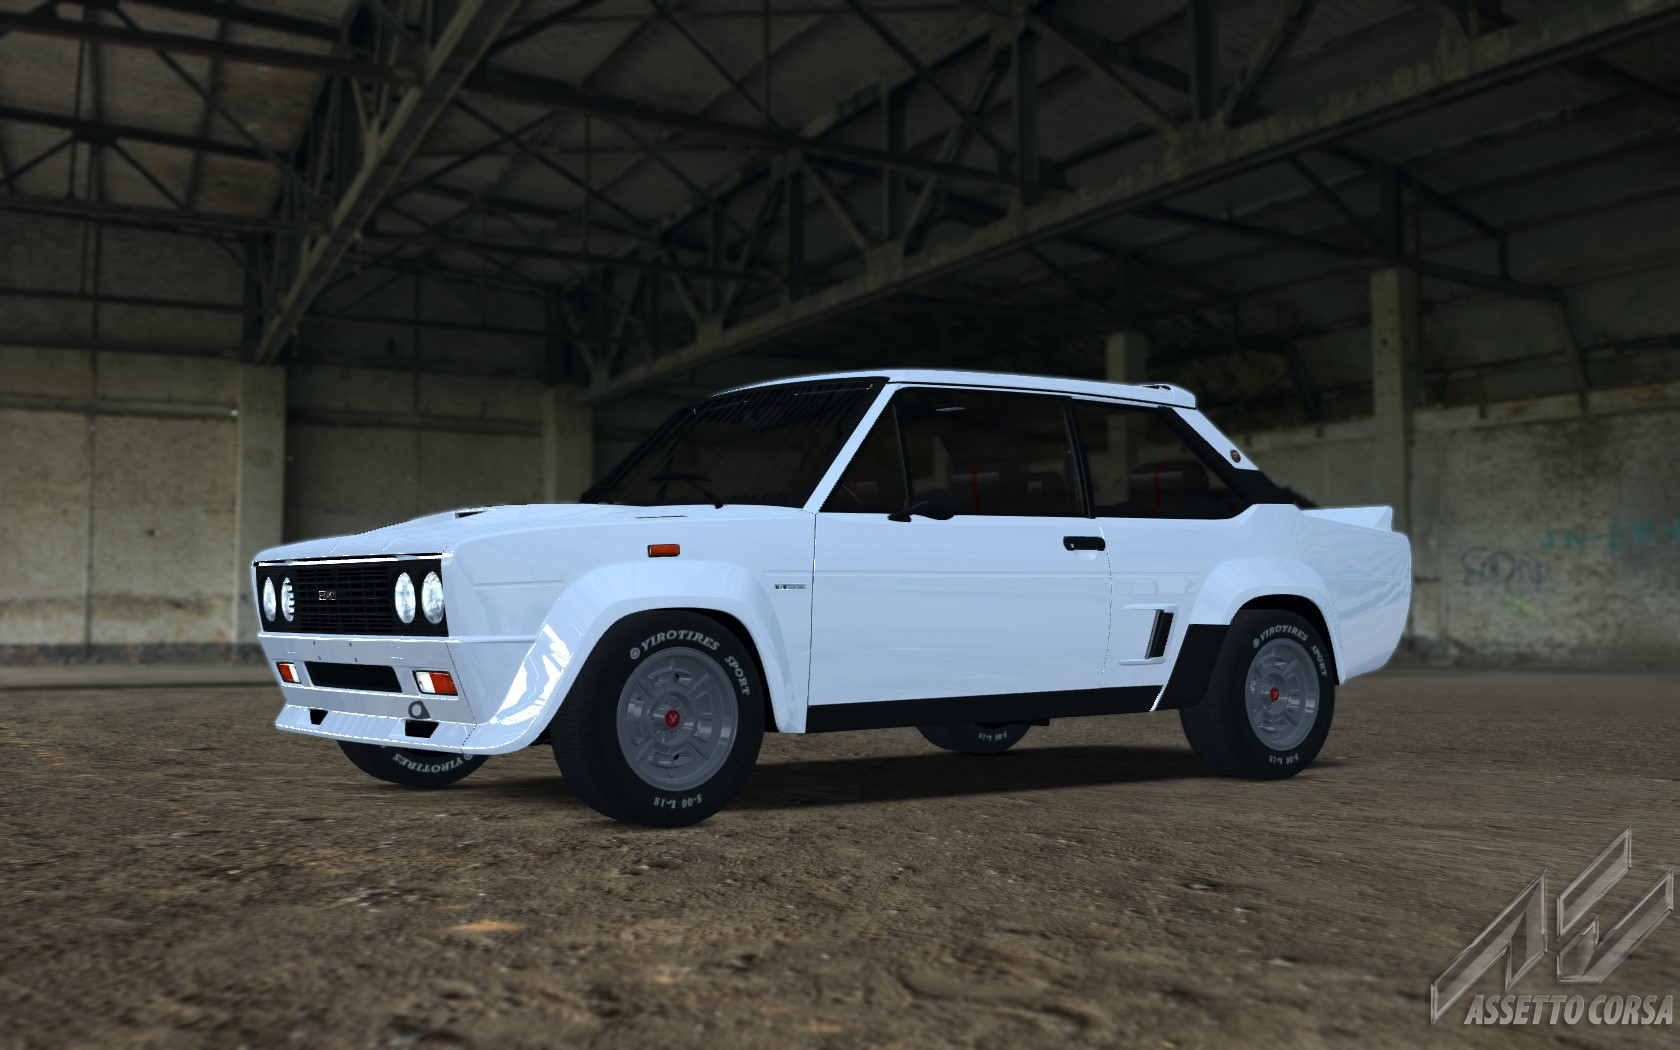 Showroom_fiat_131_abarth_29-7-2015-12-38-43.jpg